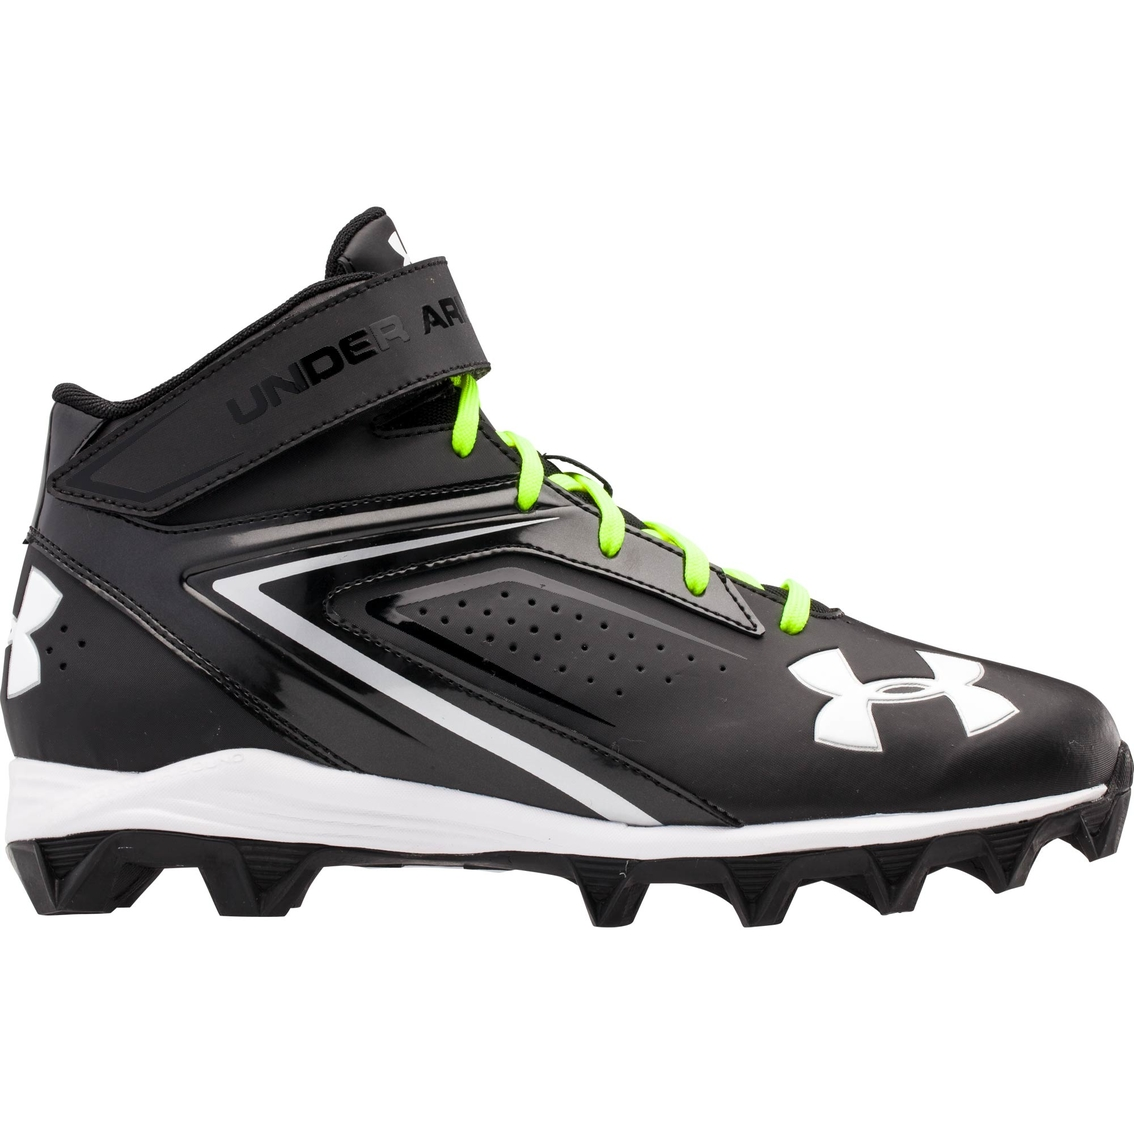 Under Armour Crusher RM JR Black 1258036-001 Youth